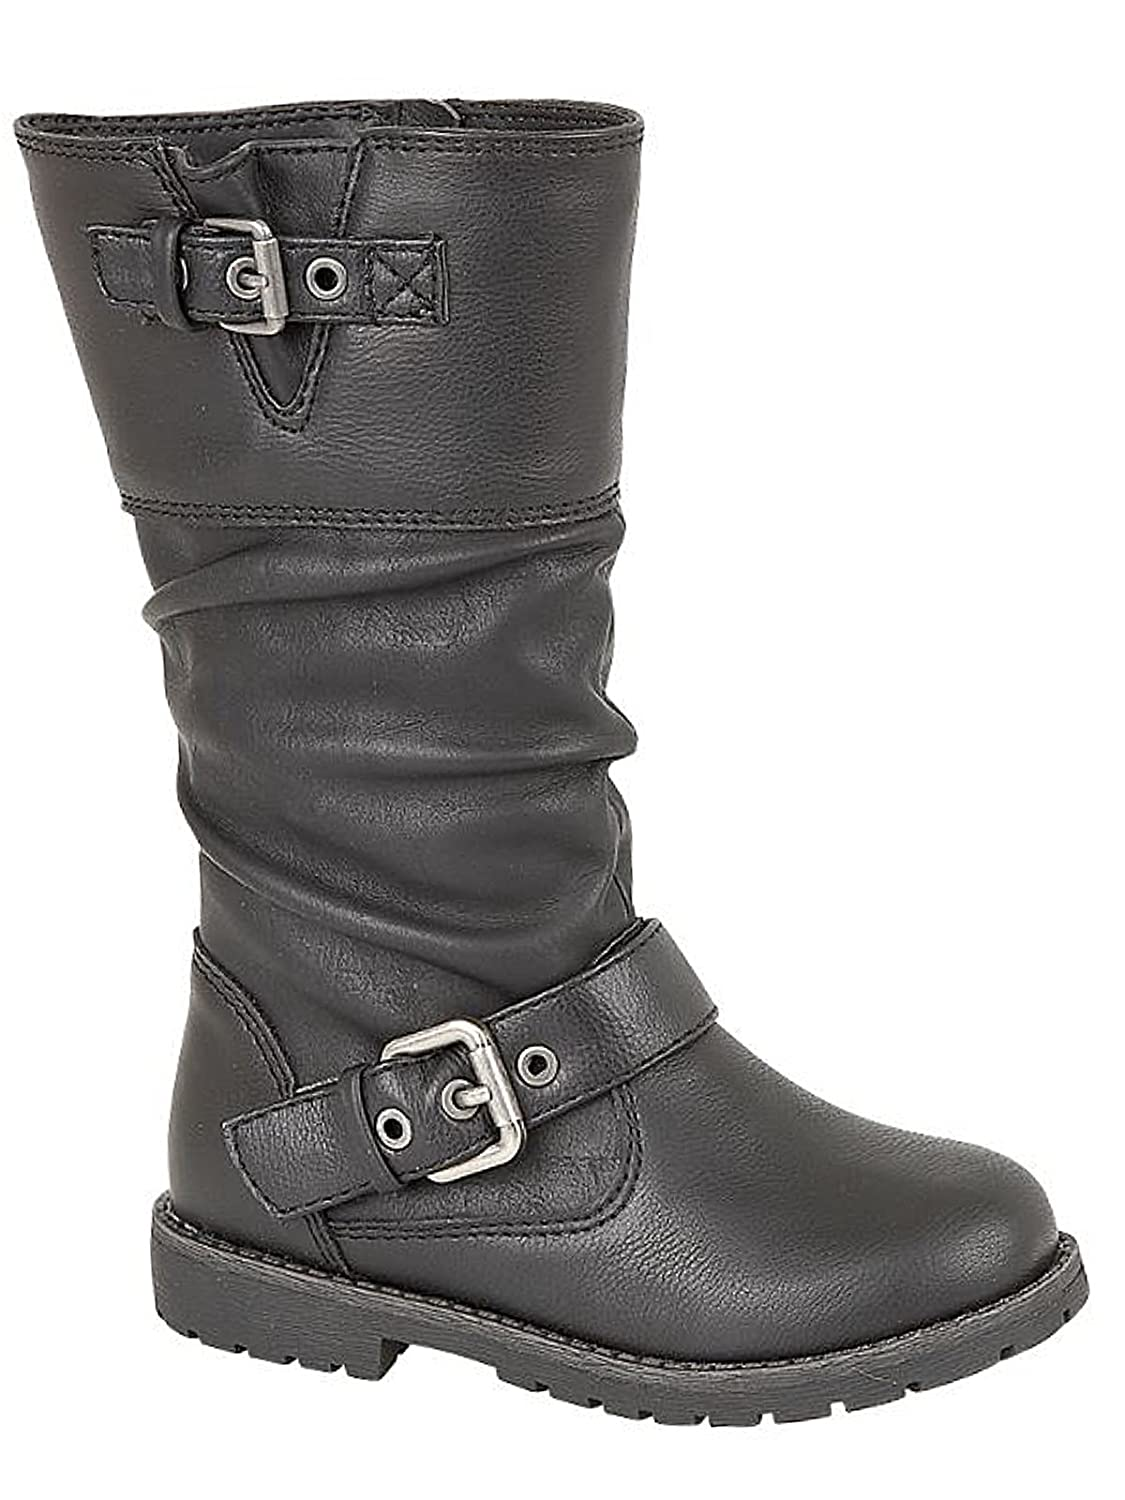 Foster Footwear Girls Infant Kids Faux Leather Black Ankle Riding Biker Zip  Fastening Boots Shoes Size 8-3 (UK 8 Infant, Black/Butterfly):  Amazon.co.uk: ...